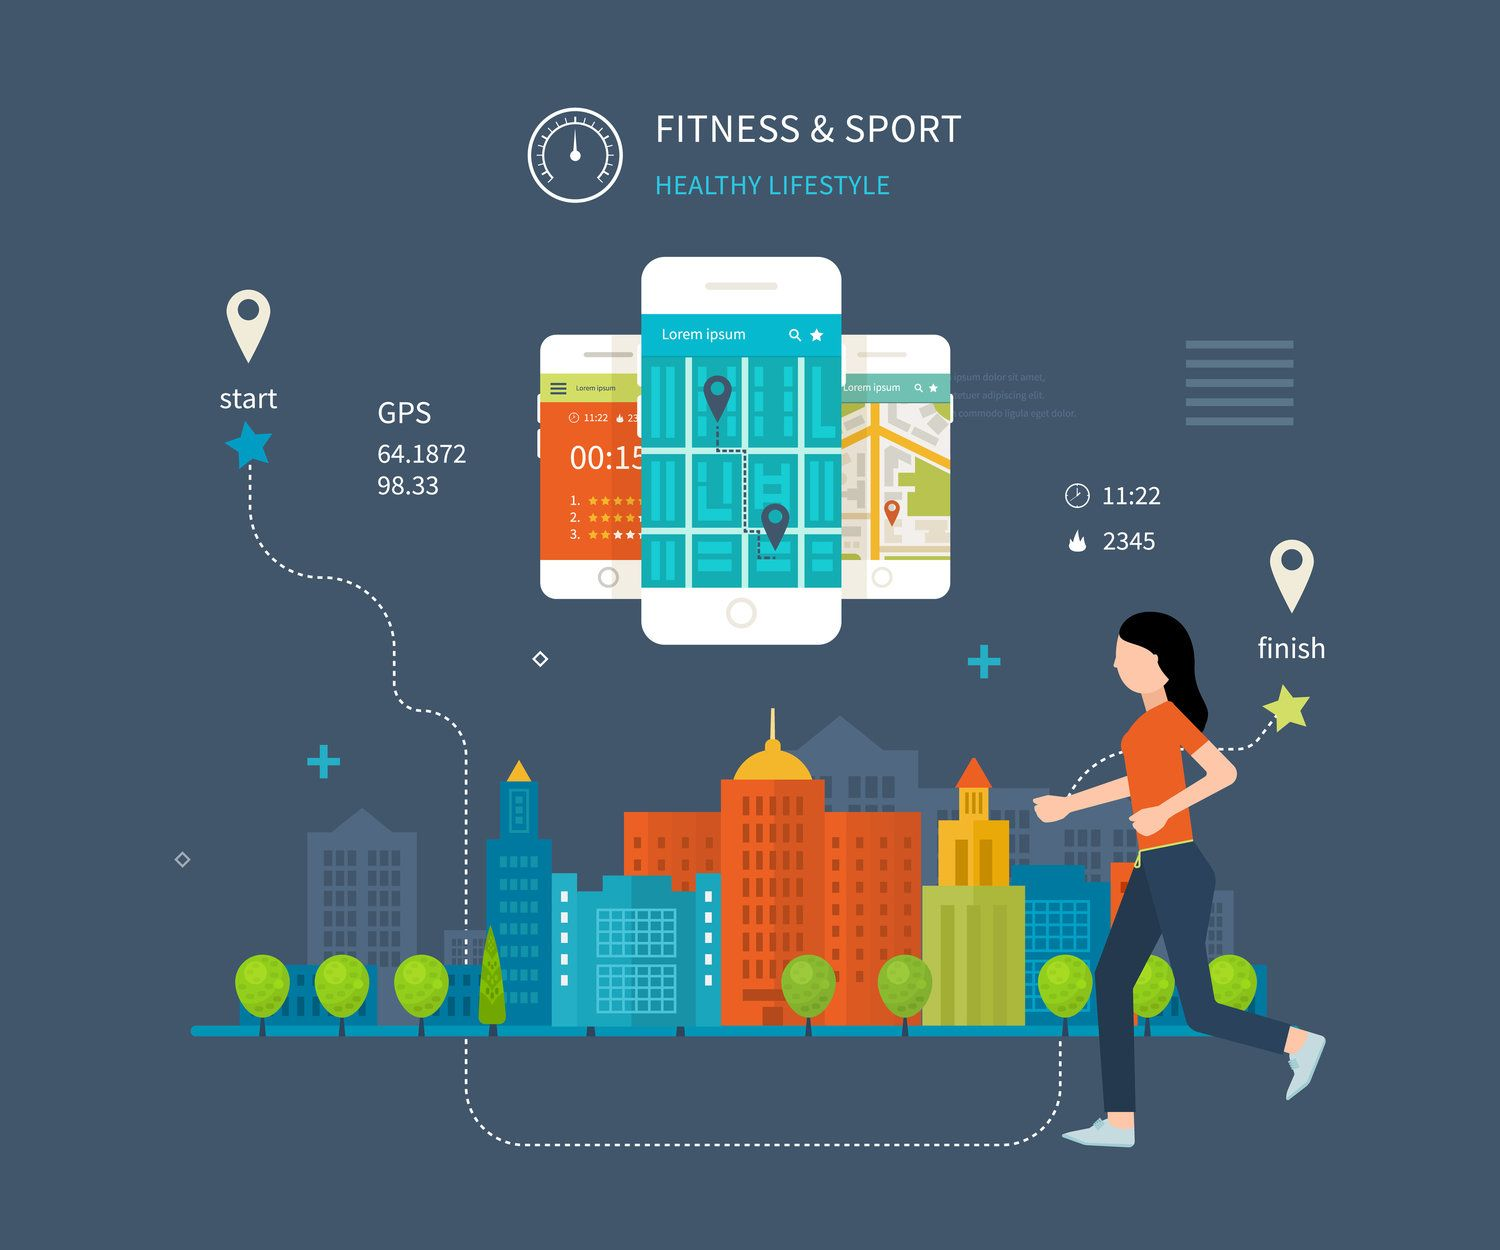 Modern fitness enthusiasts rely on apps to help them work